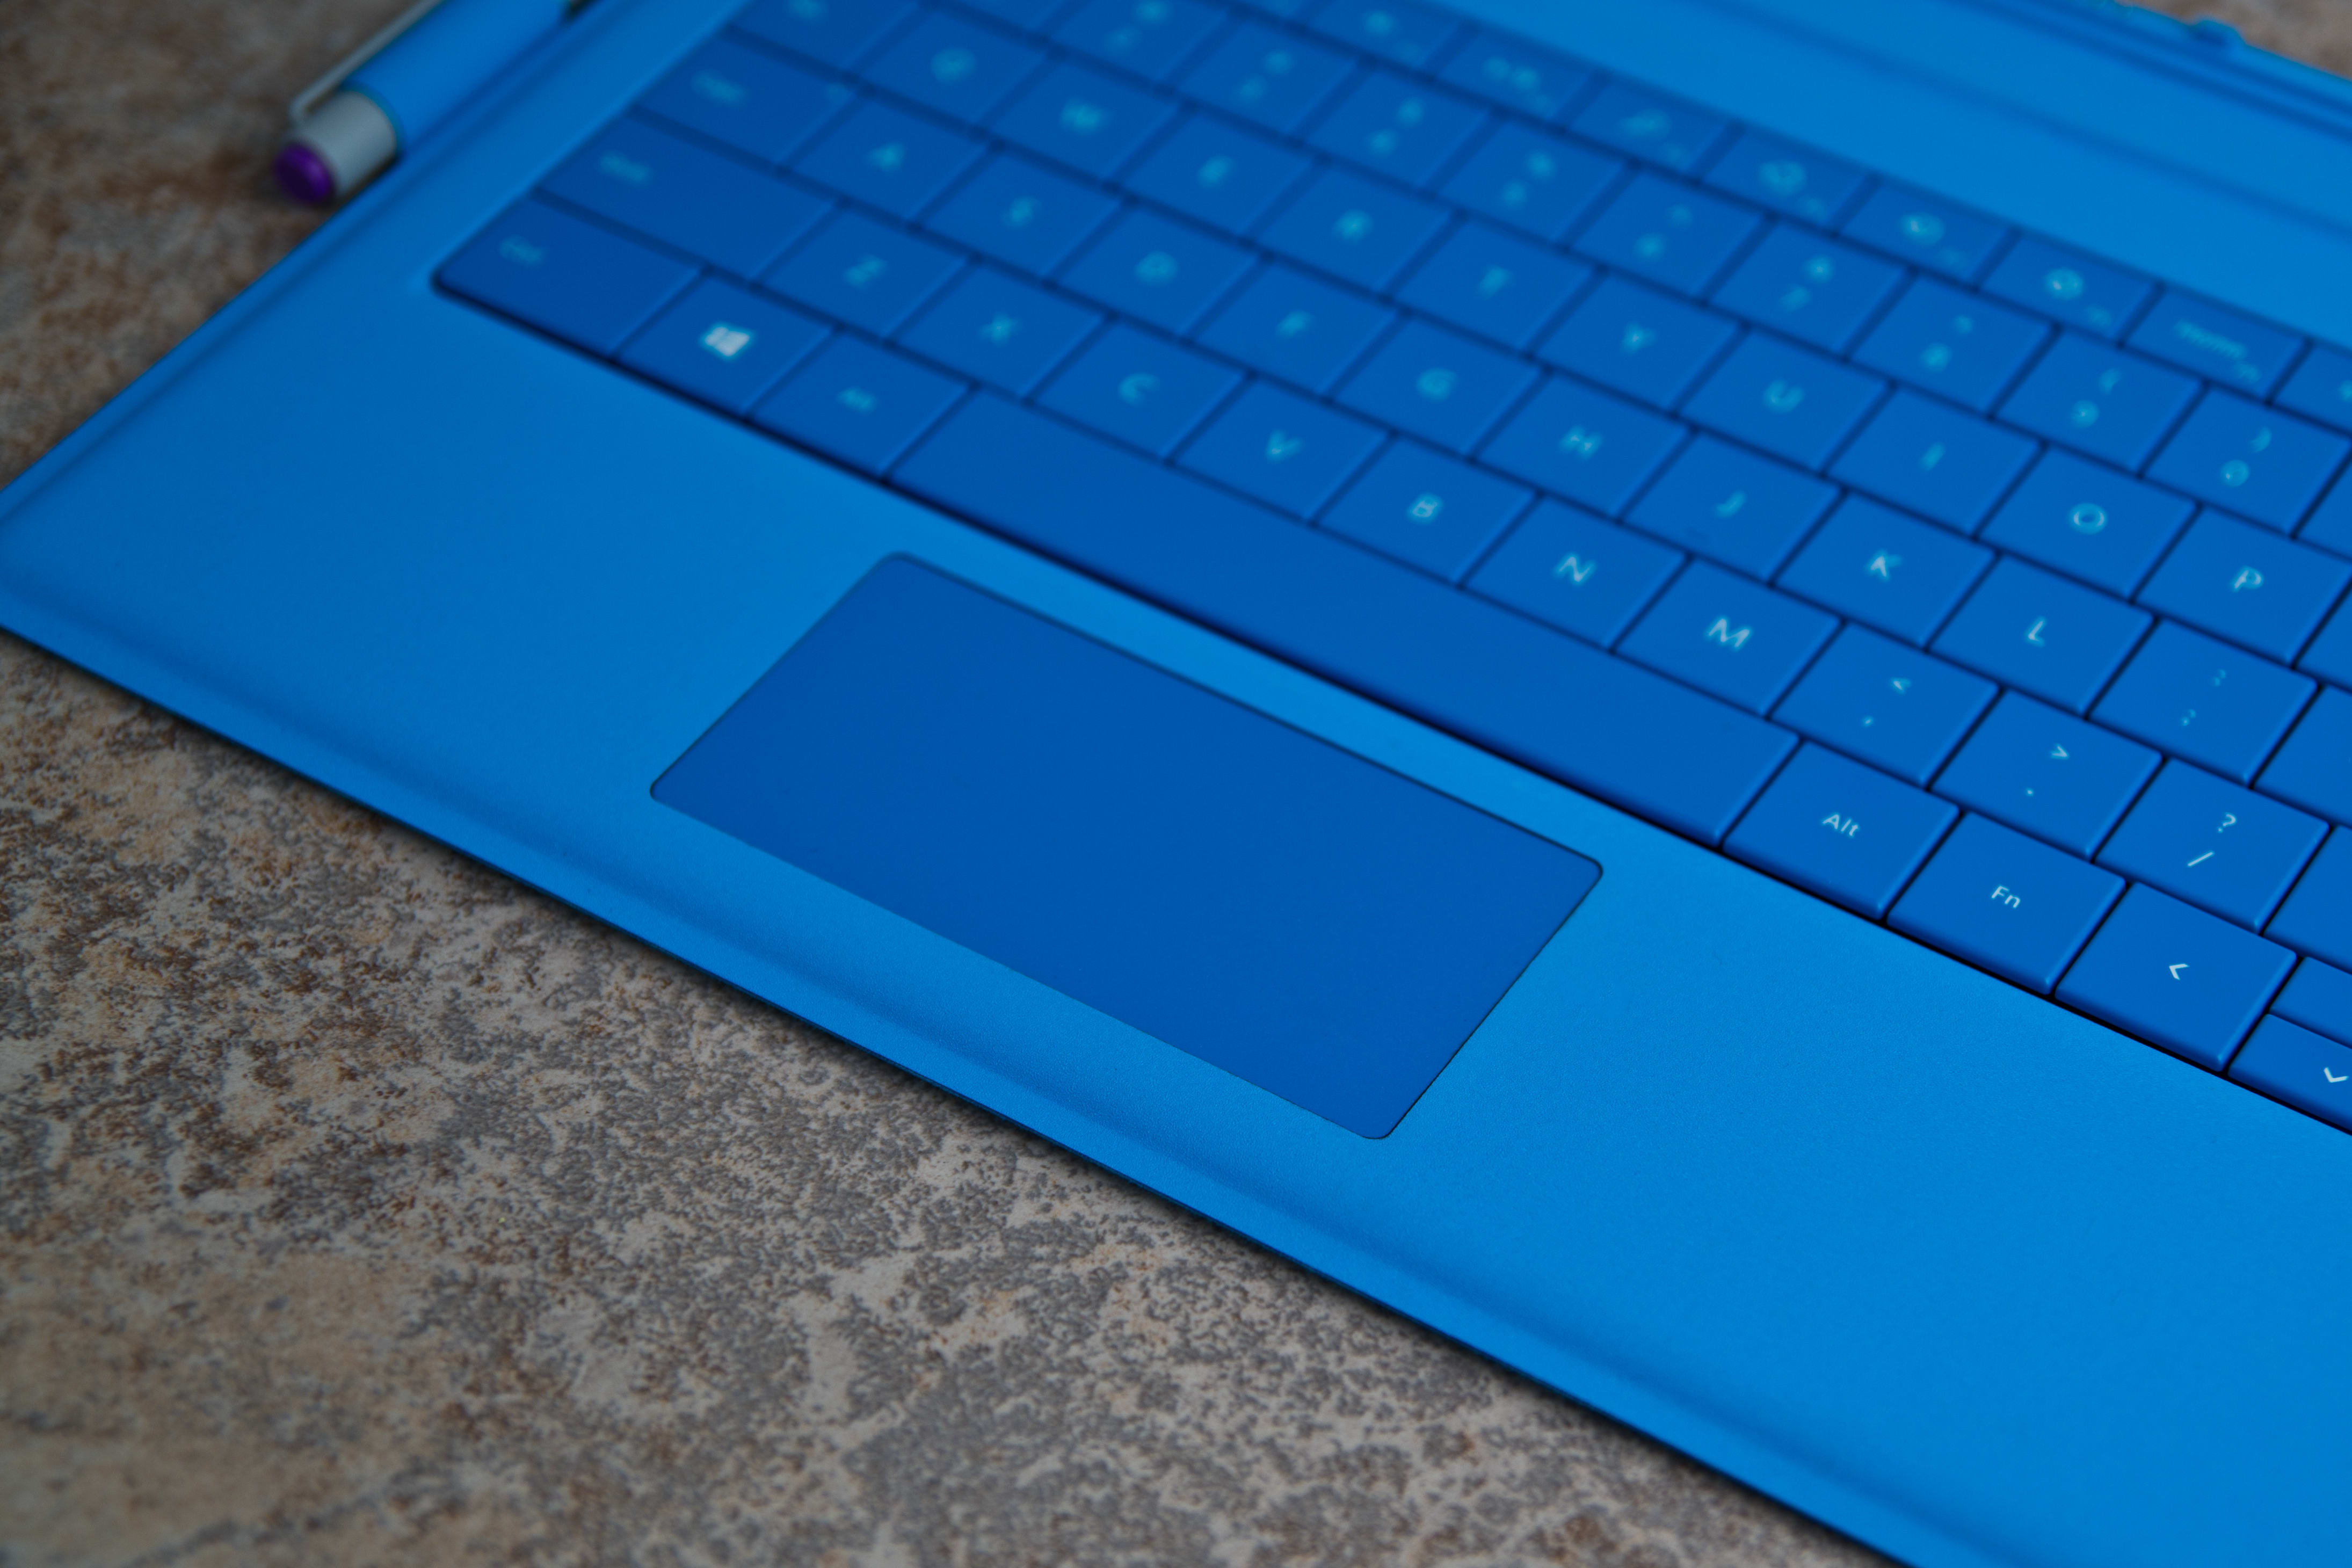 A closer look at the Microsoft Surface Pro 3's touchpad.